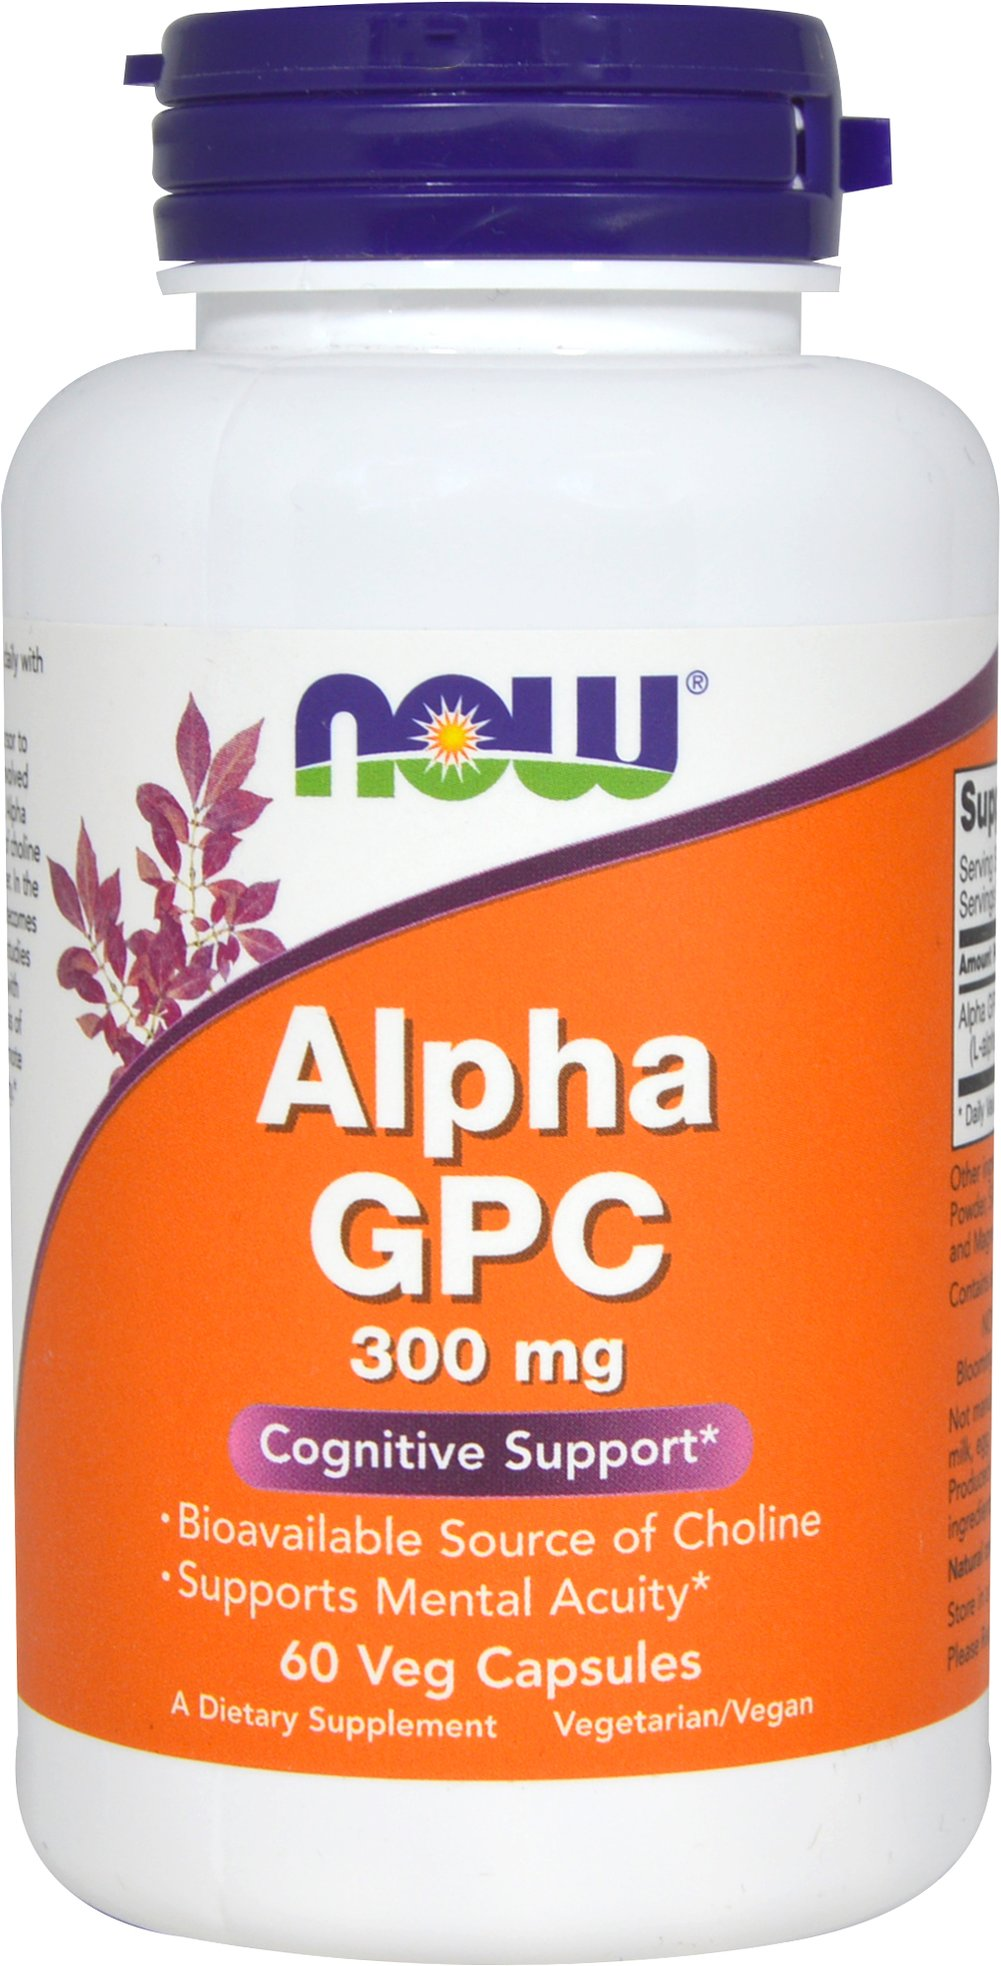 Alpha GPC 300 mg  60 Vegi Caps 300 mg $24.99